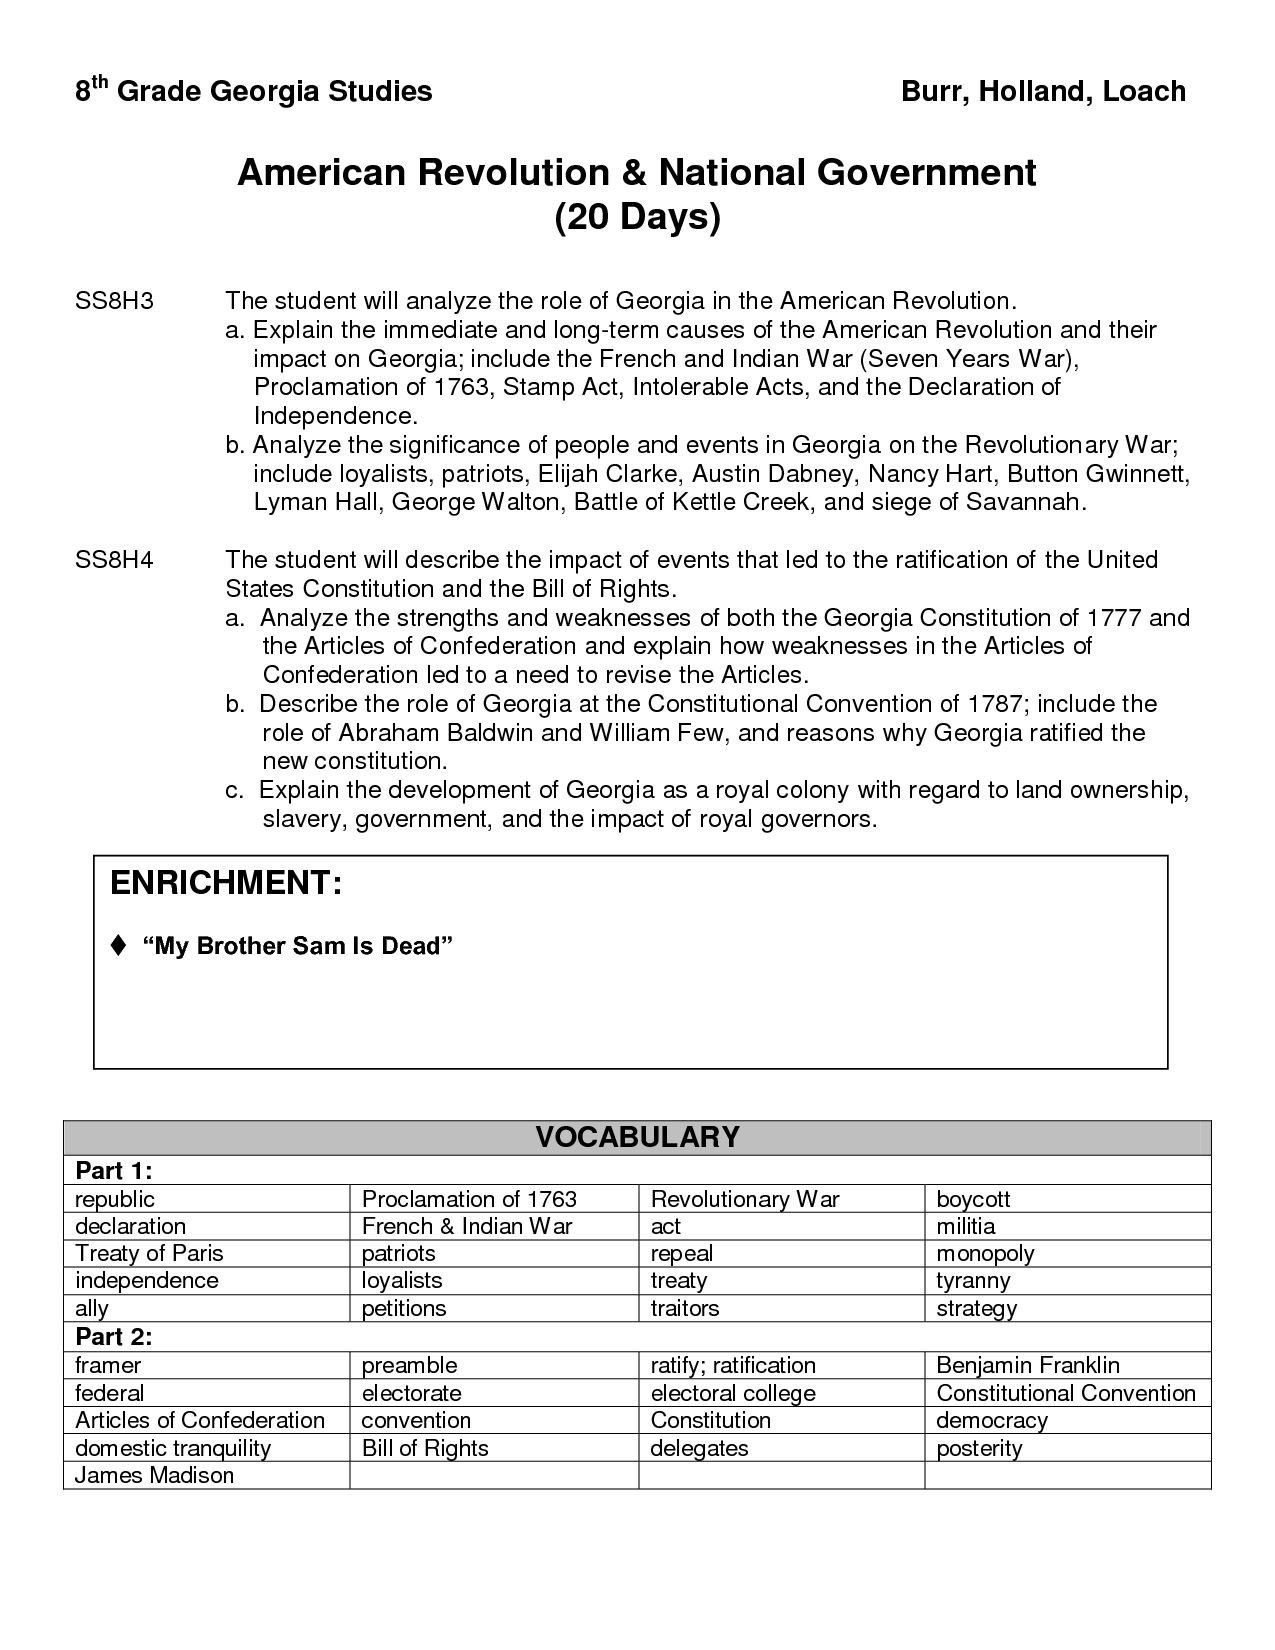 19 Best Images Of 8th Grade History Worksheets